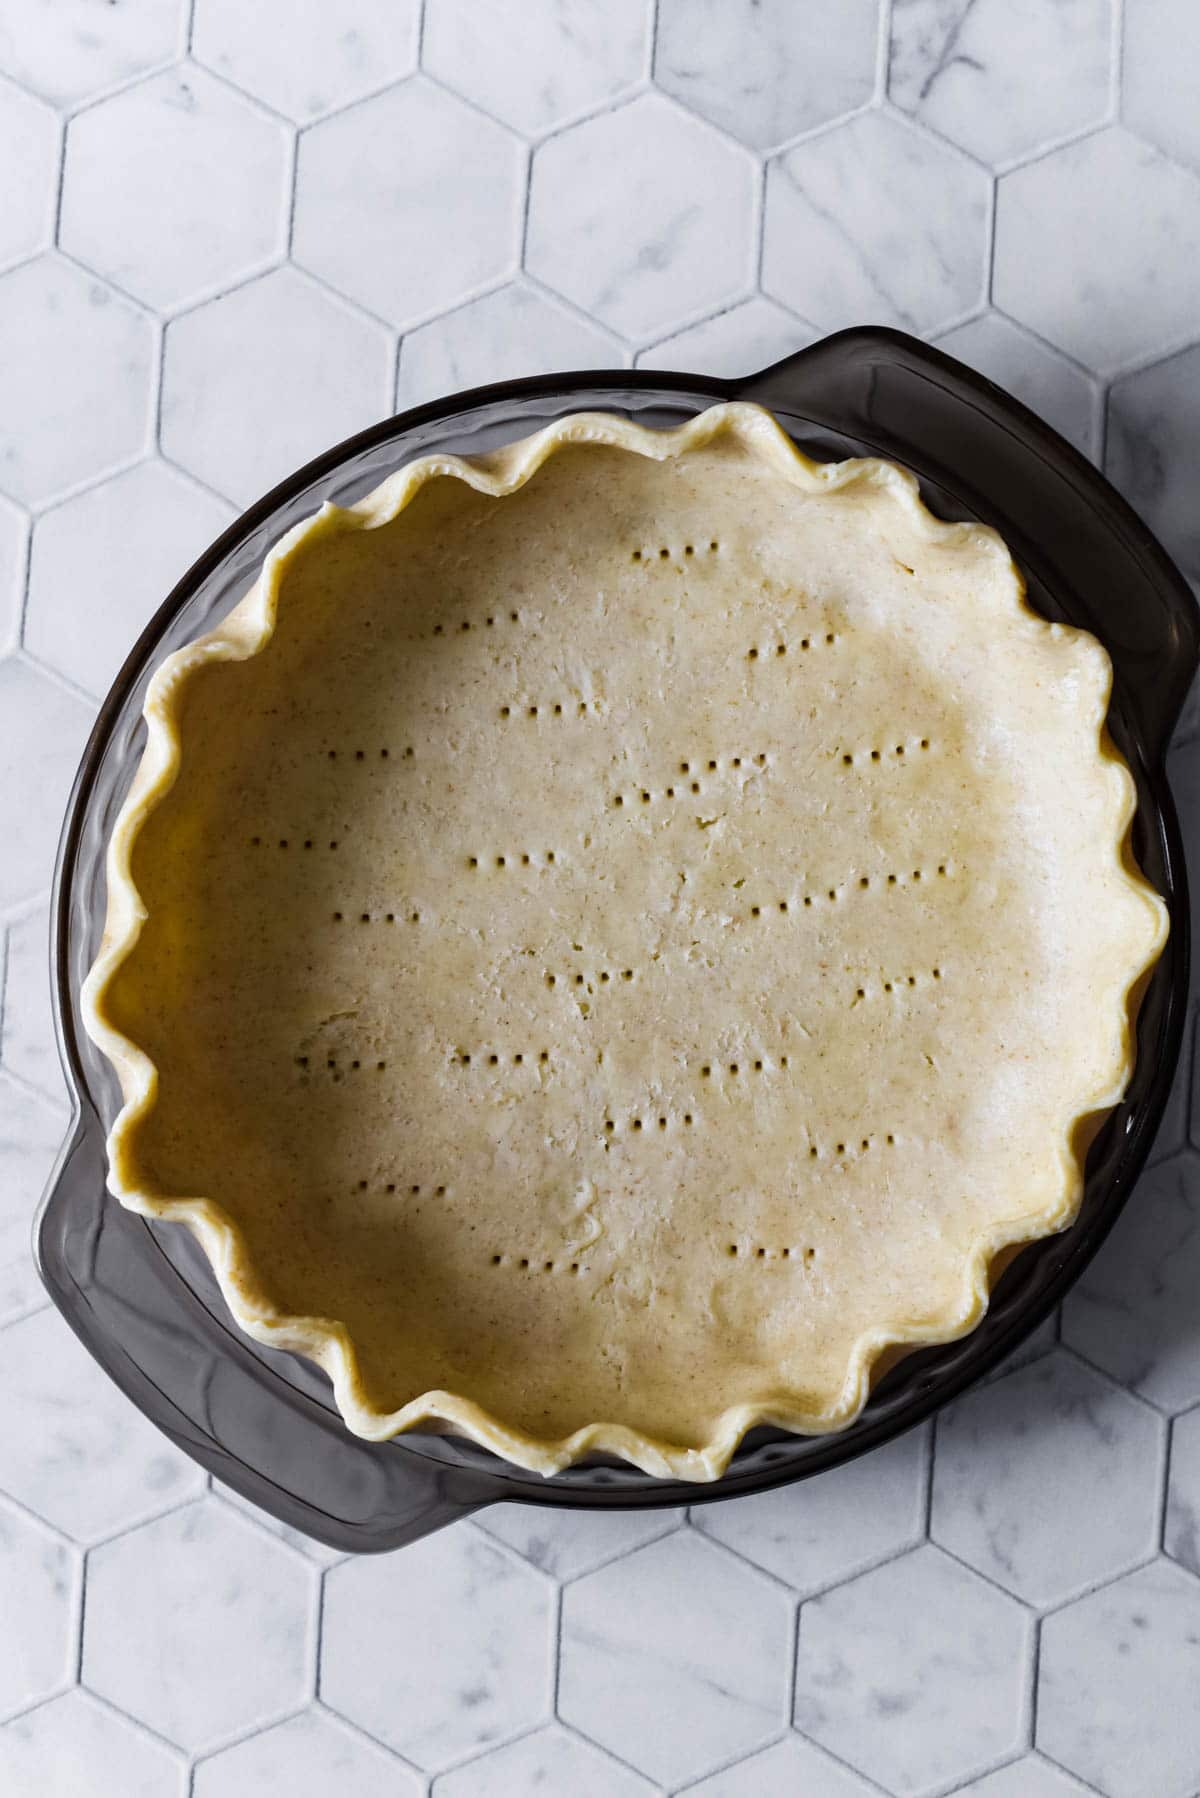 sourdough pie crust in grey glass pie plate on tiled background